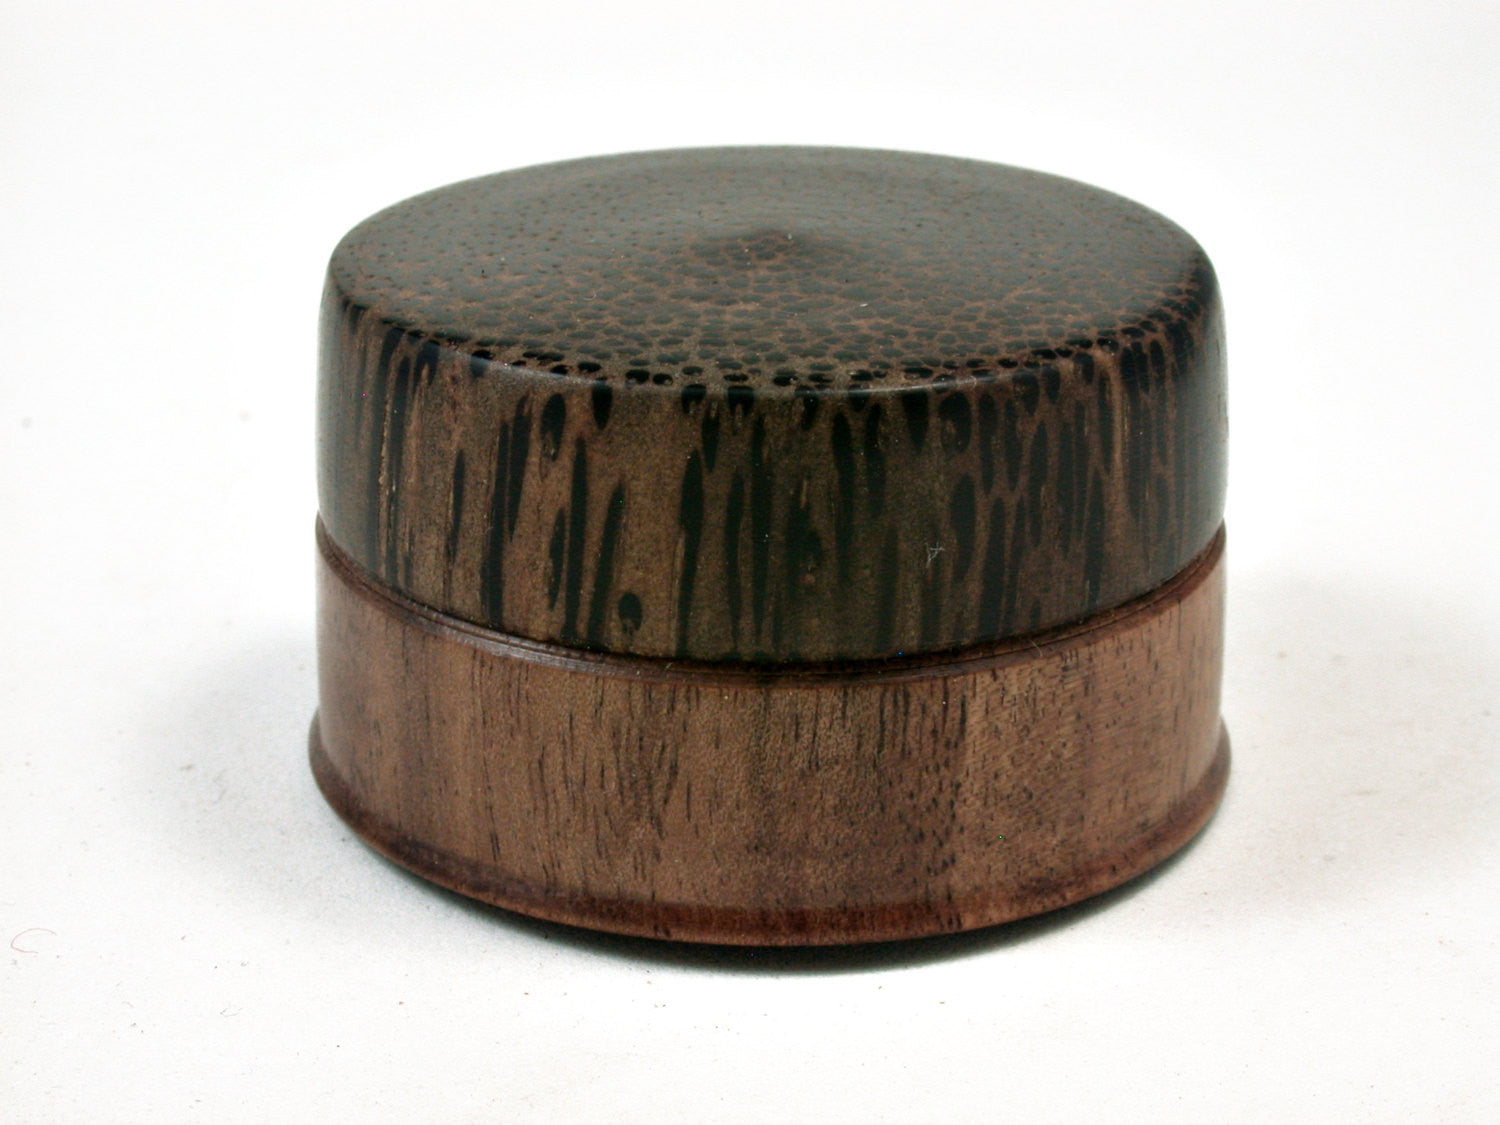 LV-2154 Ironwood Acacia & Black Palm Flat Pill Box, Ring Holder, Jewelry Box-SCREW CAP